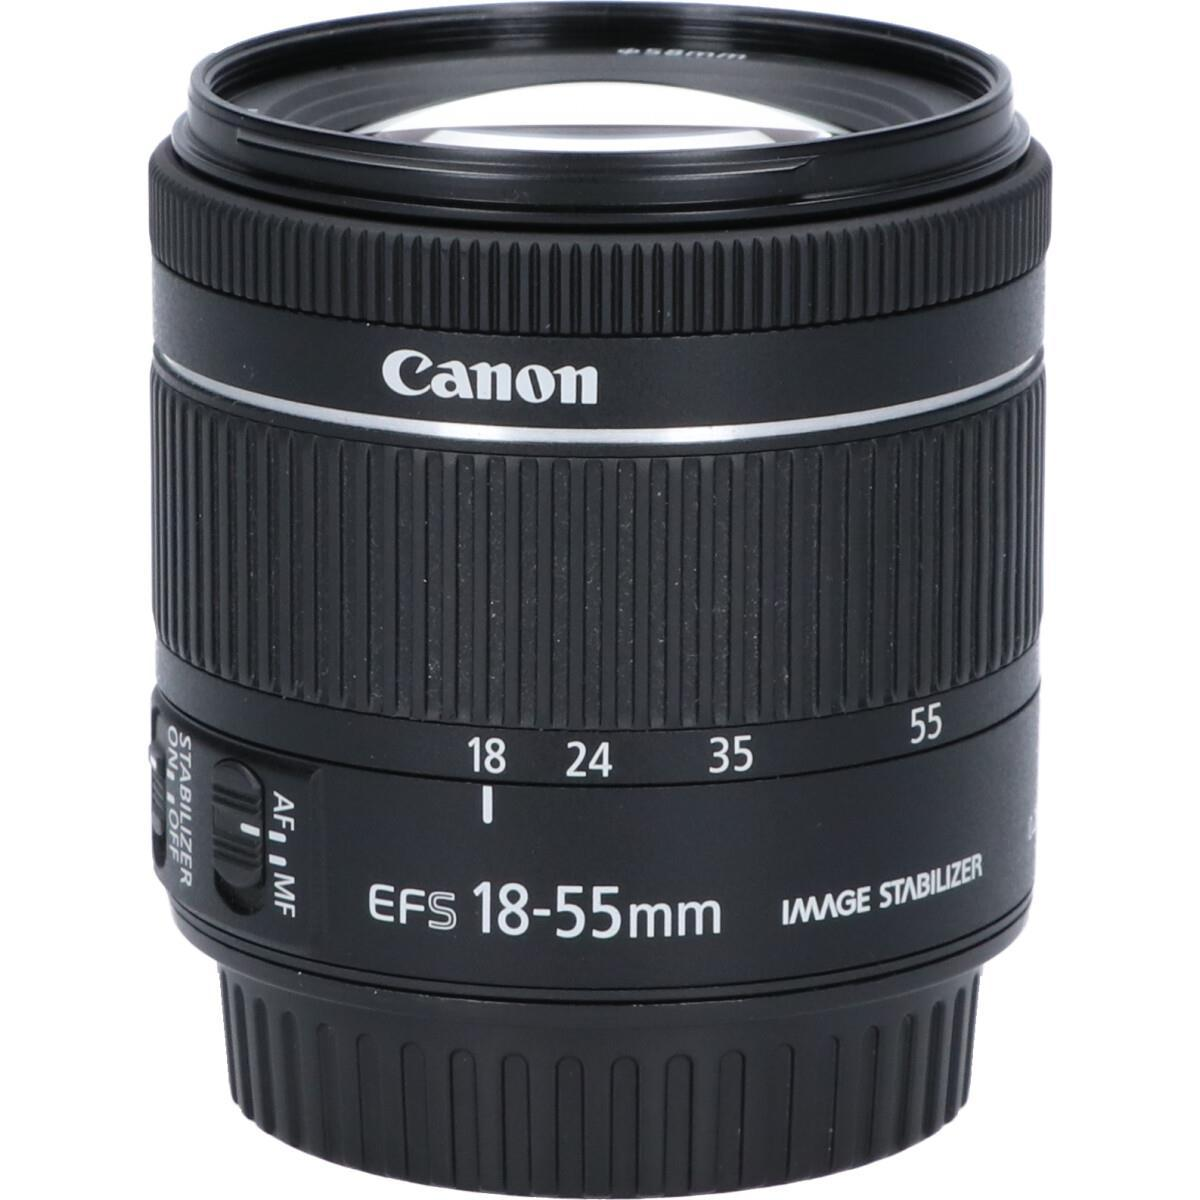 CANON EF-S18-55mm F4-5.6IS STM